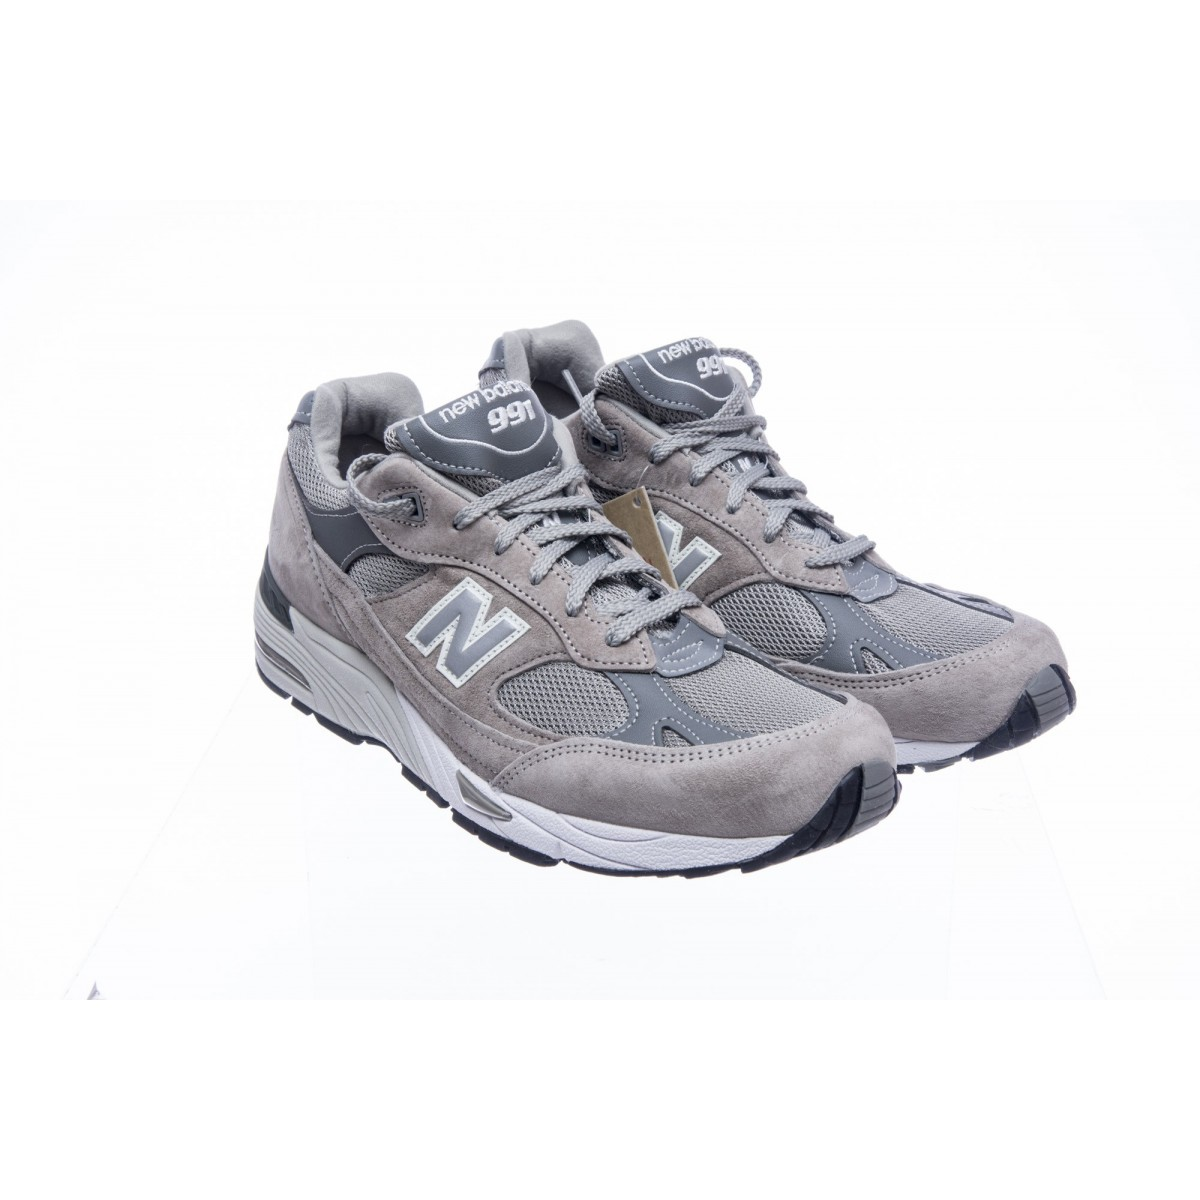 Scarpa New balance Uomo - M991 made in UK